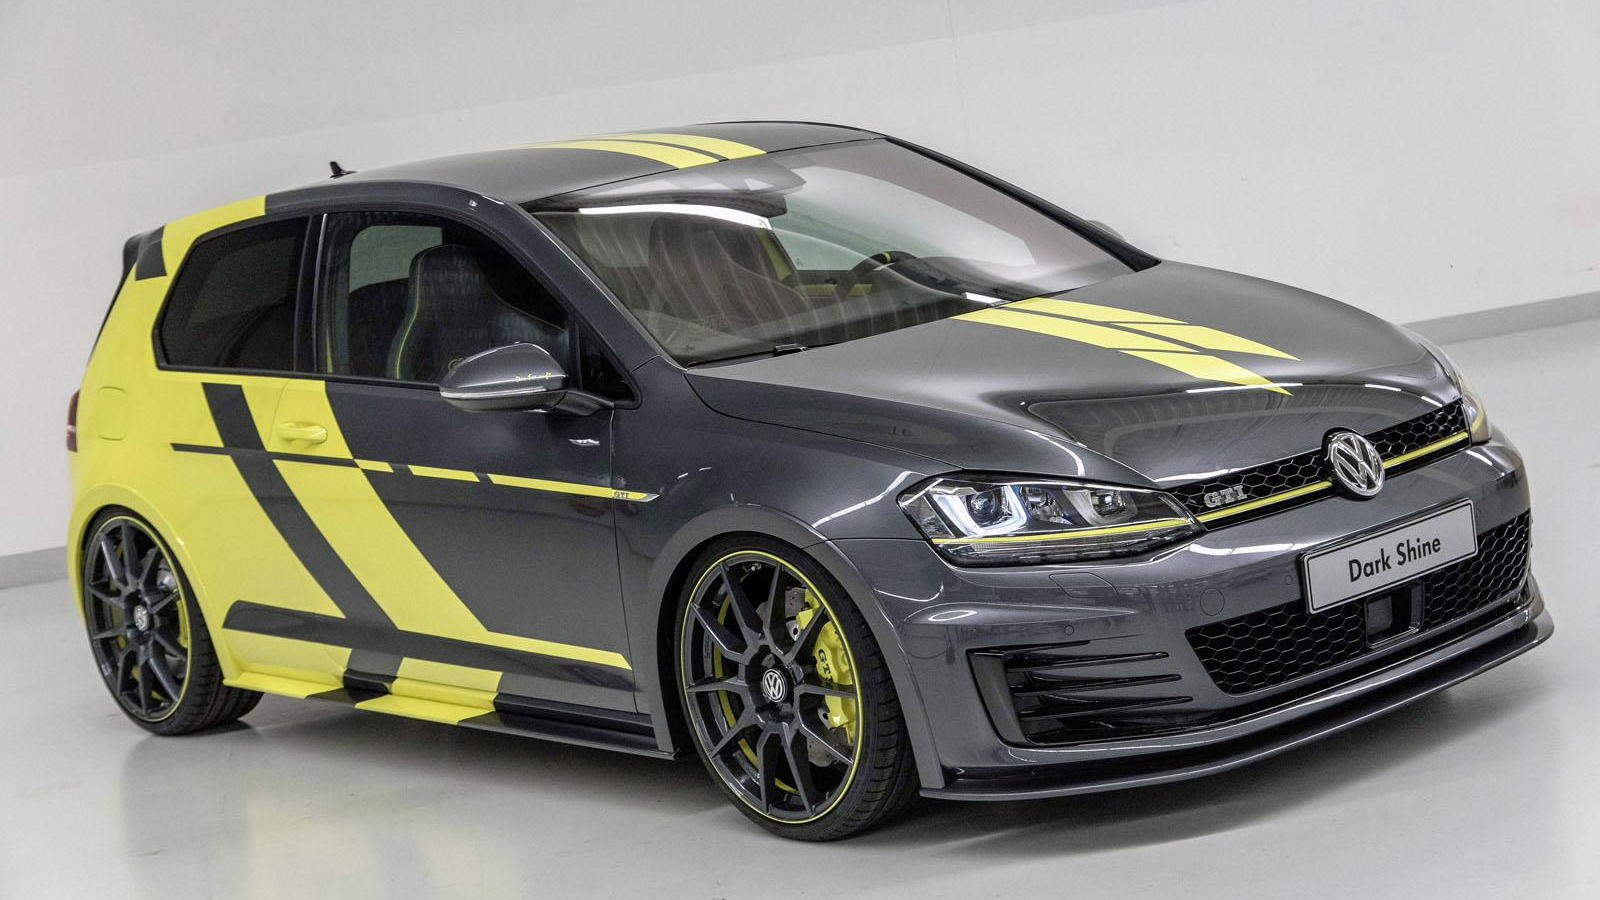 Volkswagen Gti Dark Shine And Golf Variant Biturbo Concepts Debut At Worthersee